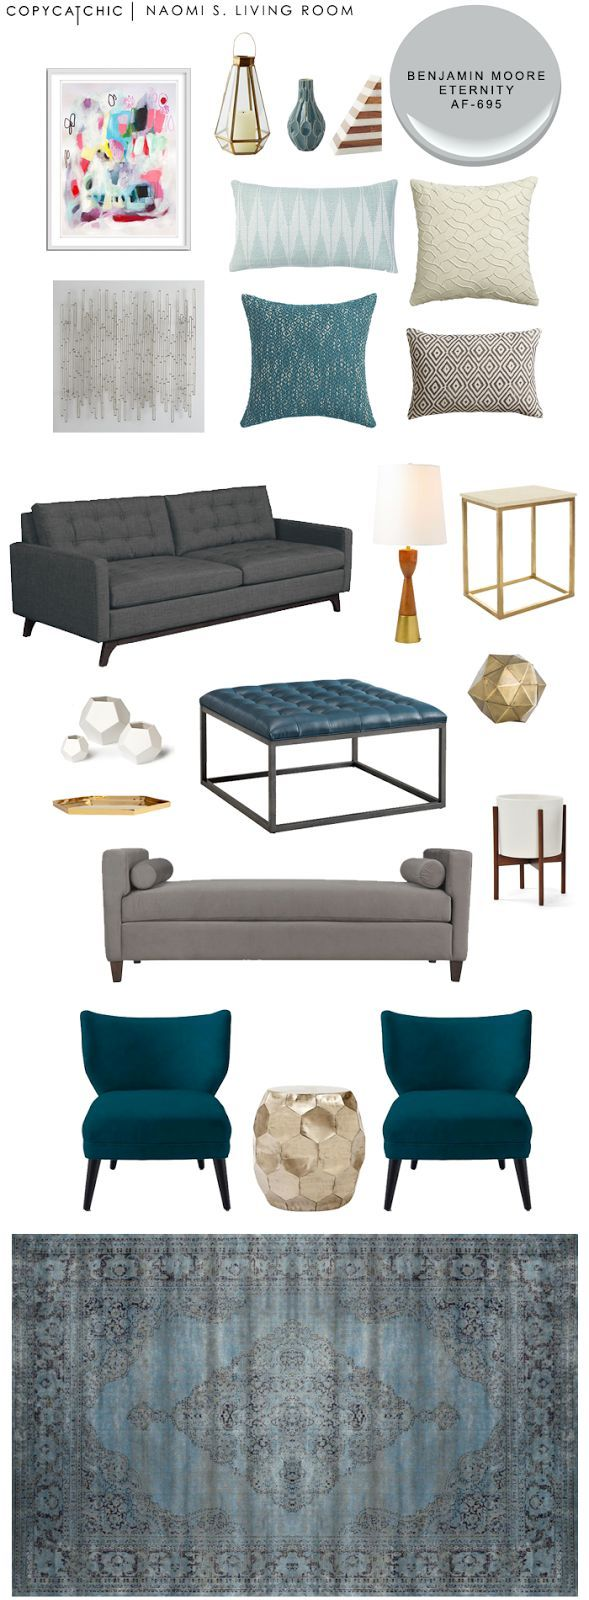 Copy Cat Chic Clients: Naomi S. A Large Living Room With Accents Of  Turquoise